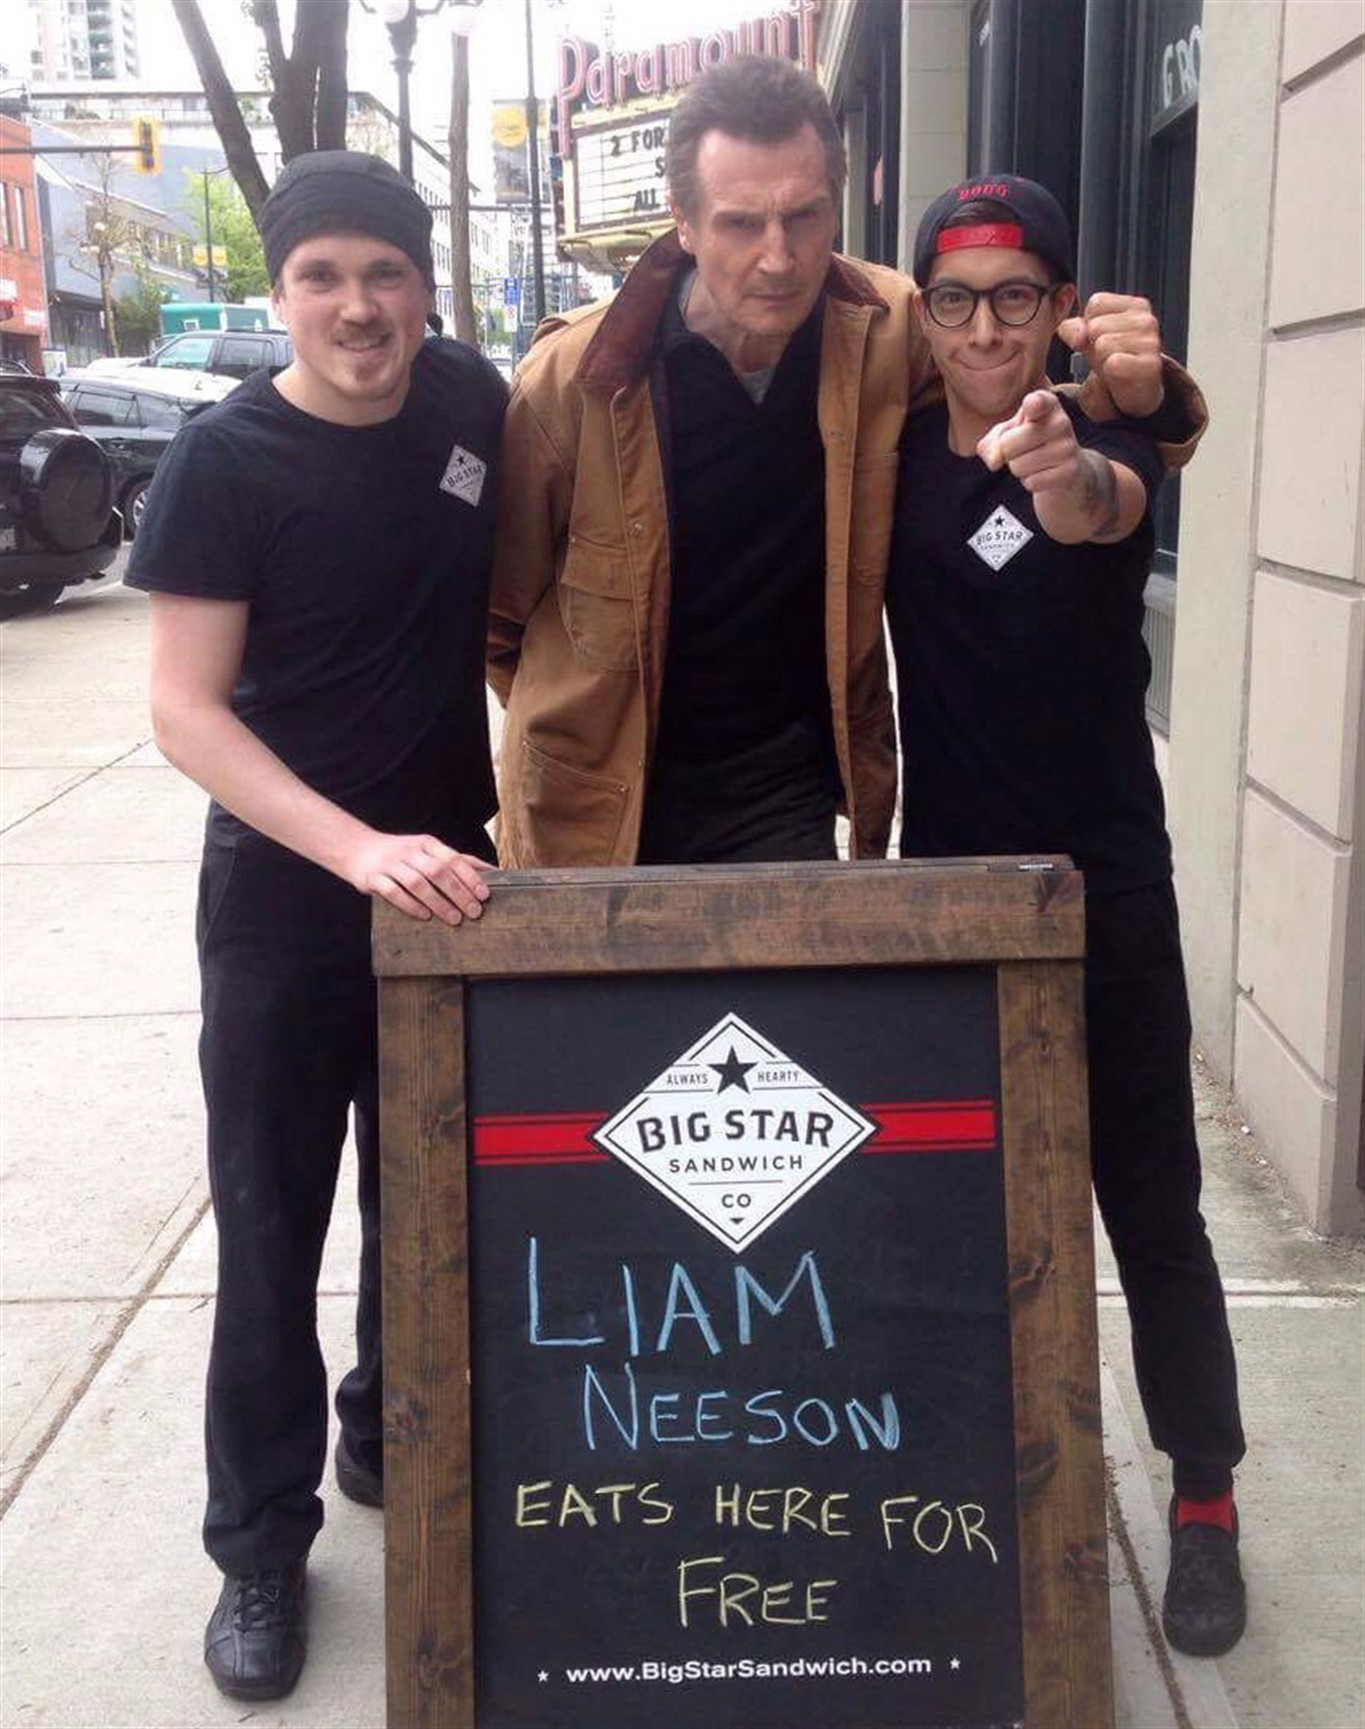 A Sandwich Shop Made A Sign For Liam Neeson & He Turned Up